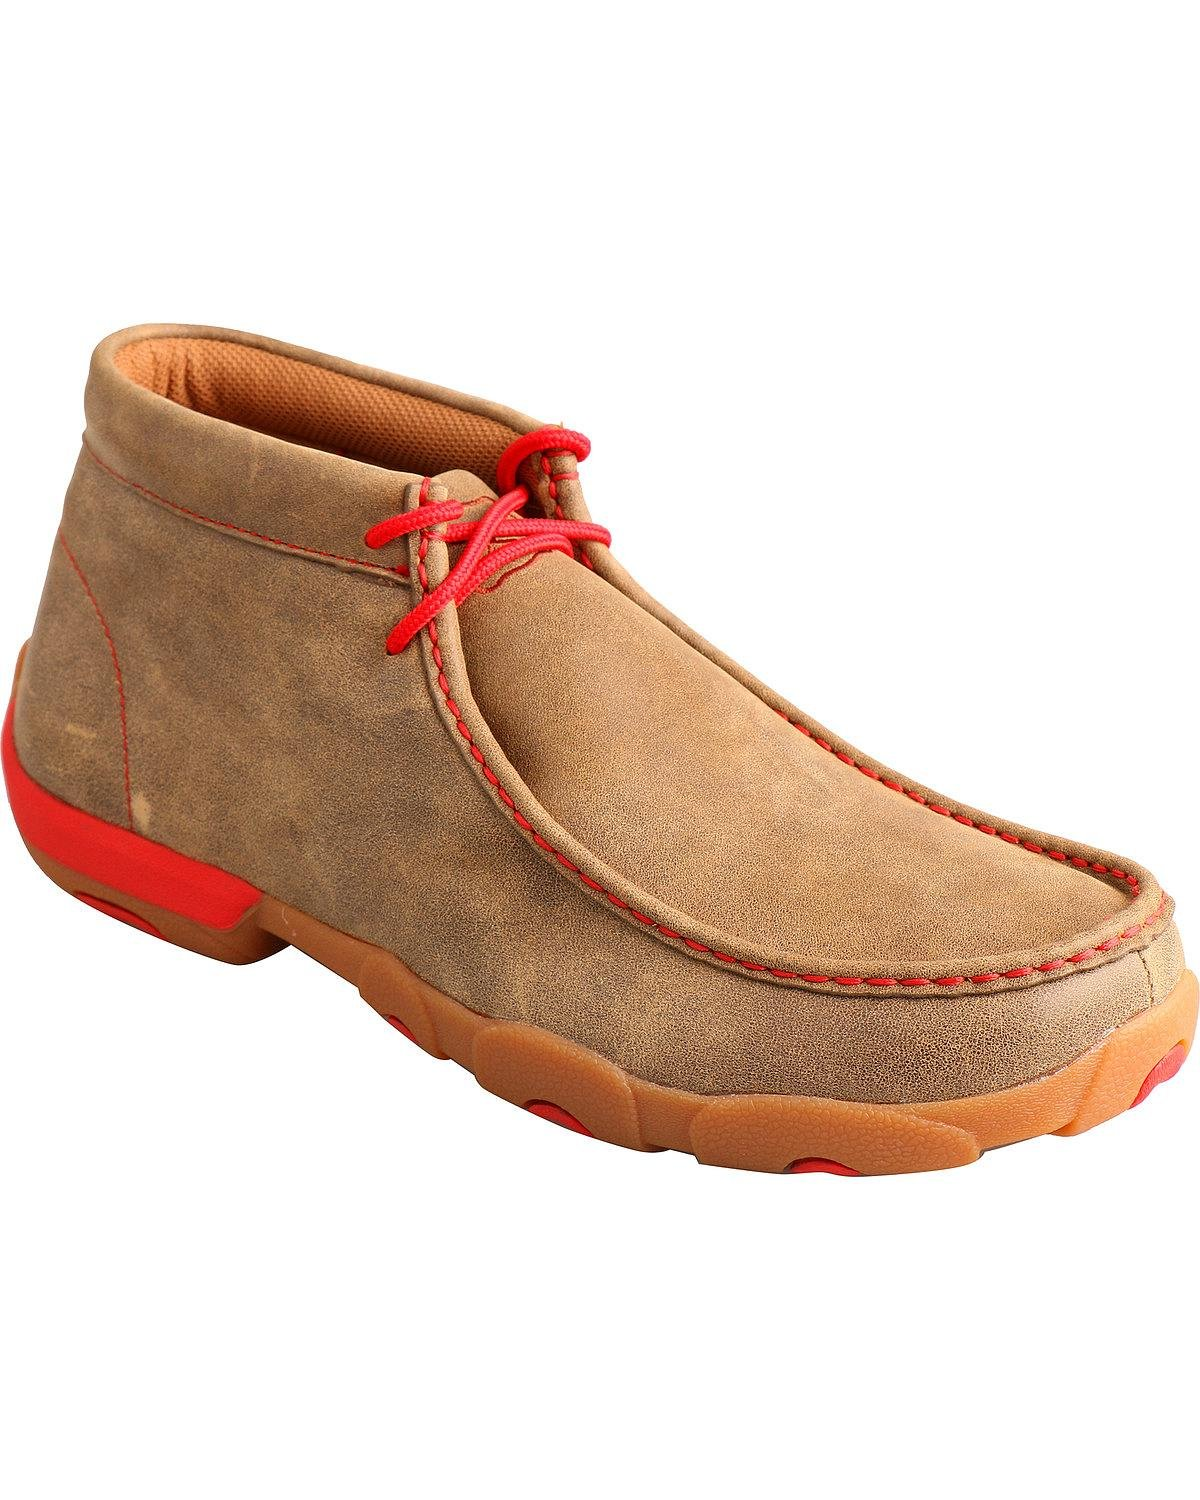 Twisted X Mens Driving Moccasins TWISTED X BOOTS